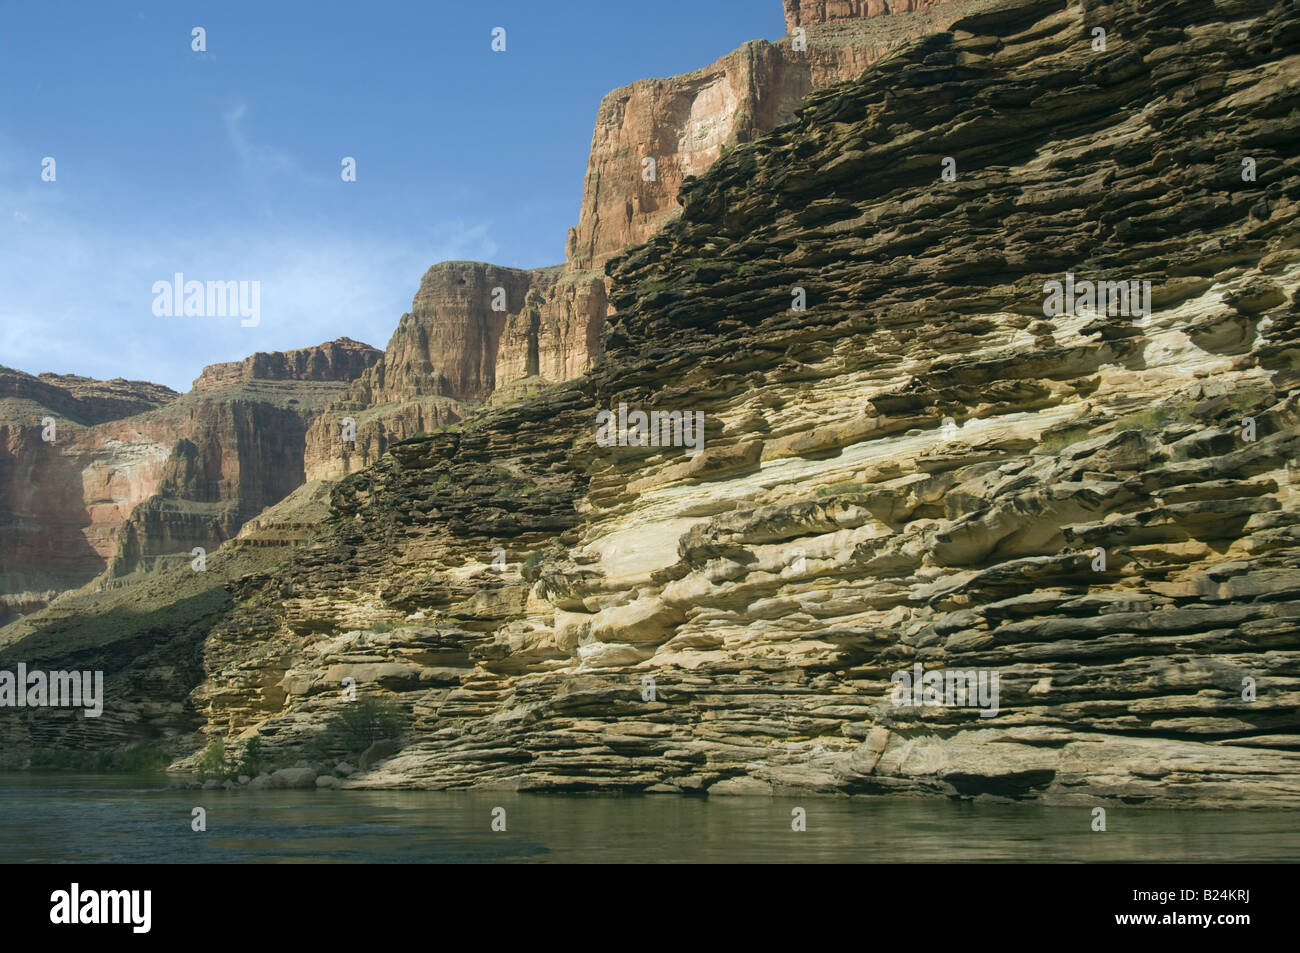 Sandstone limestone layers moenkopi tapeats kaibab along the Colorado River Grand Canyon National Park Arizona US - Stock Image